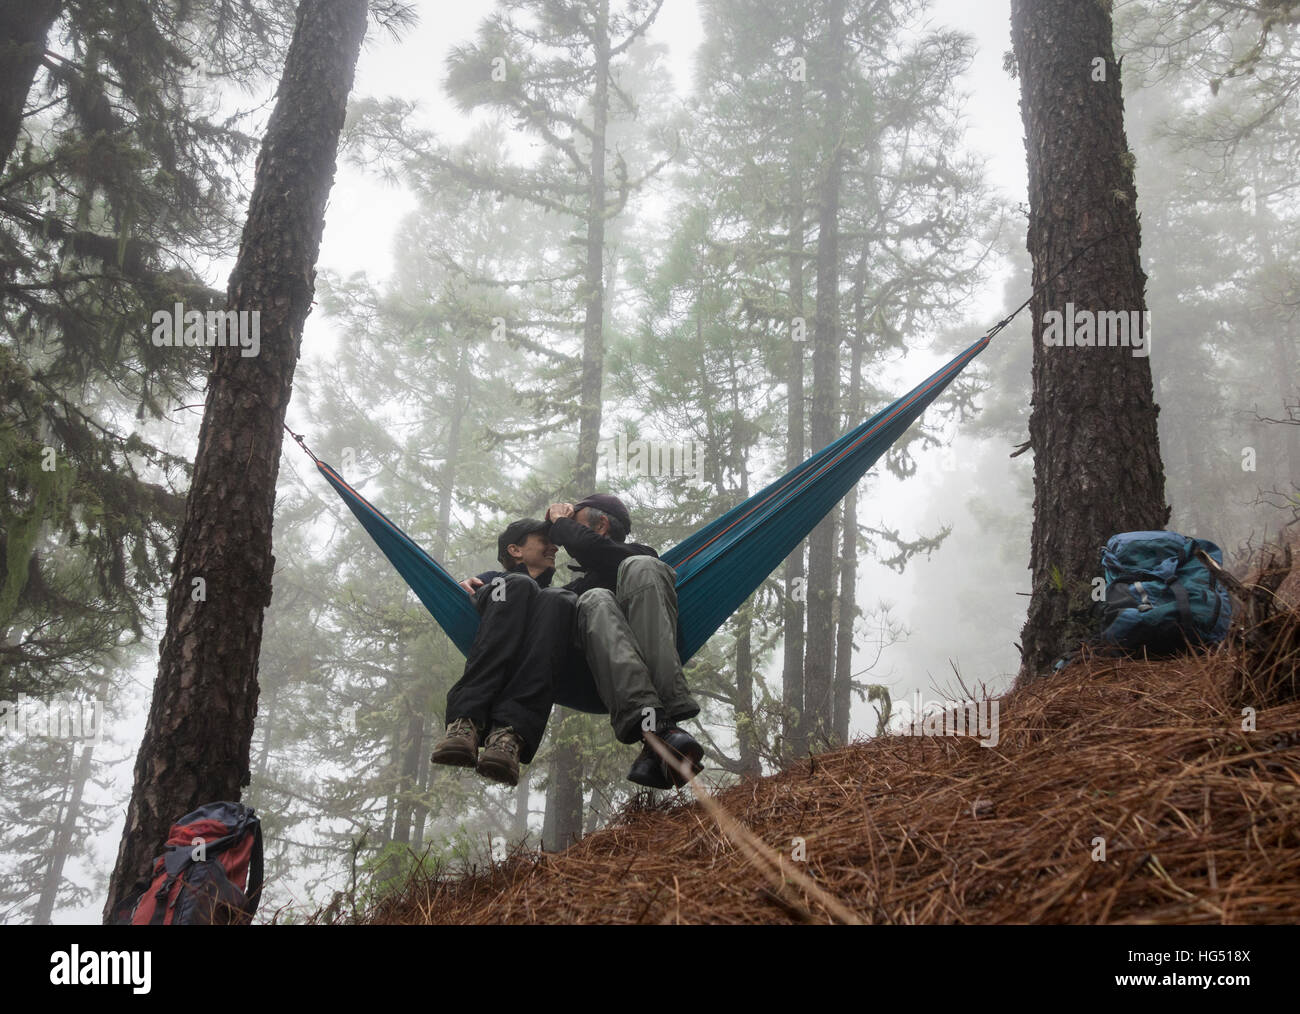 Mature couple hiking, relaxing in hammock in misty pine forest. - Stock Image